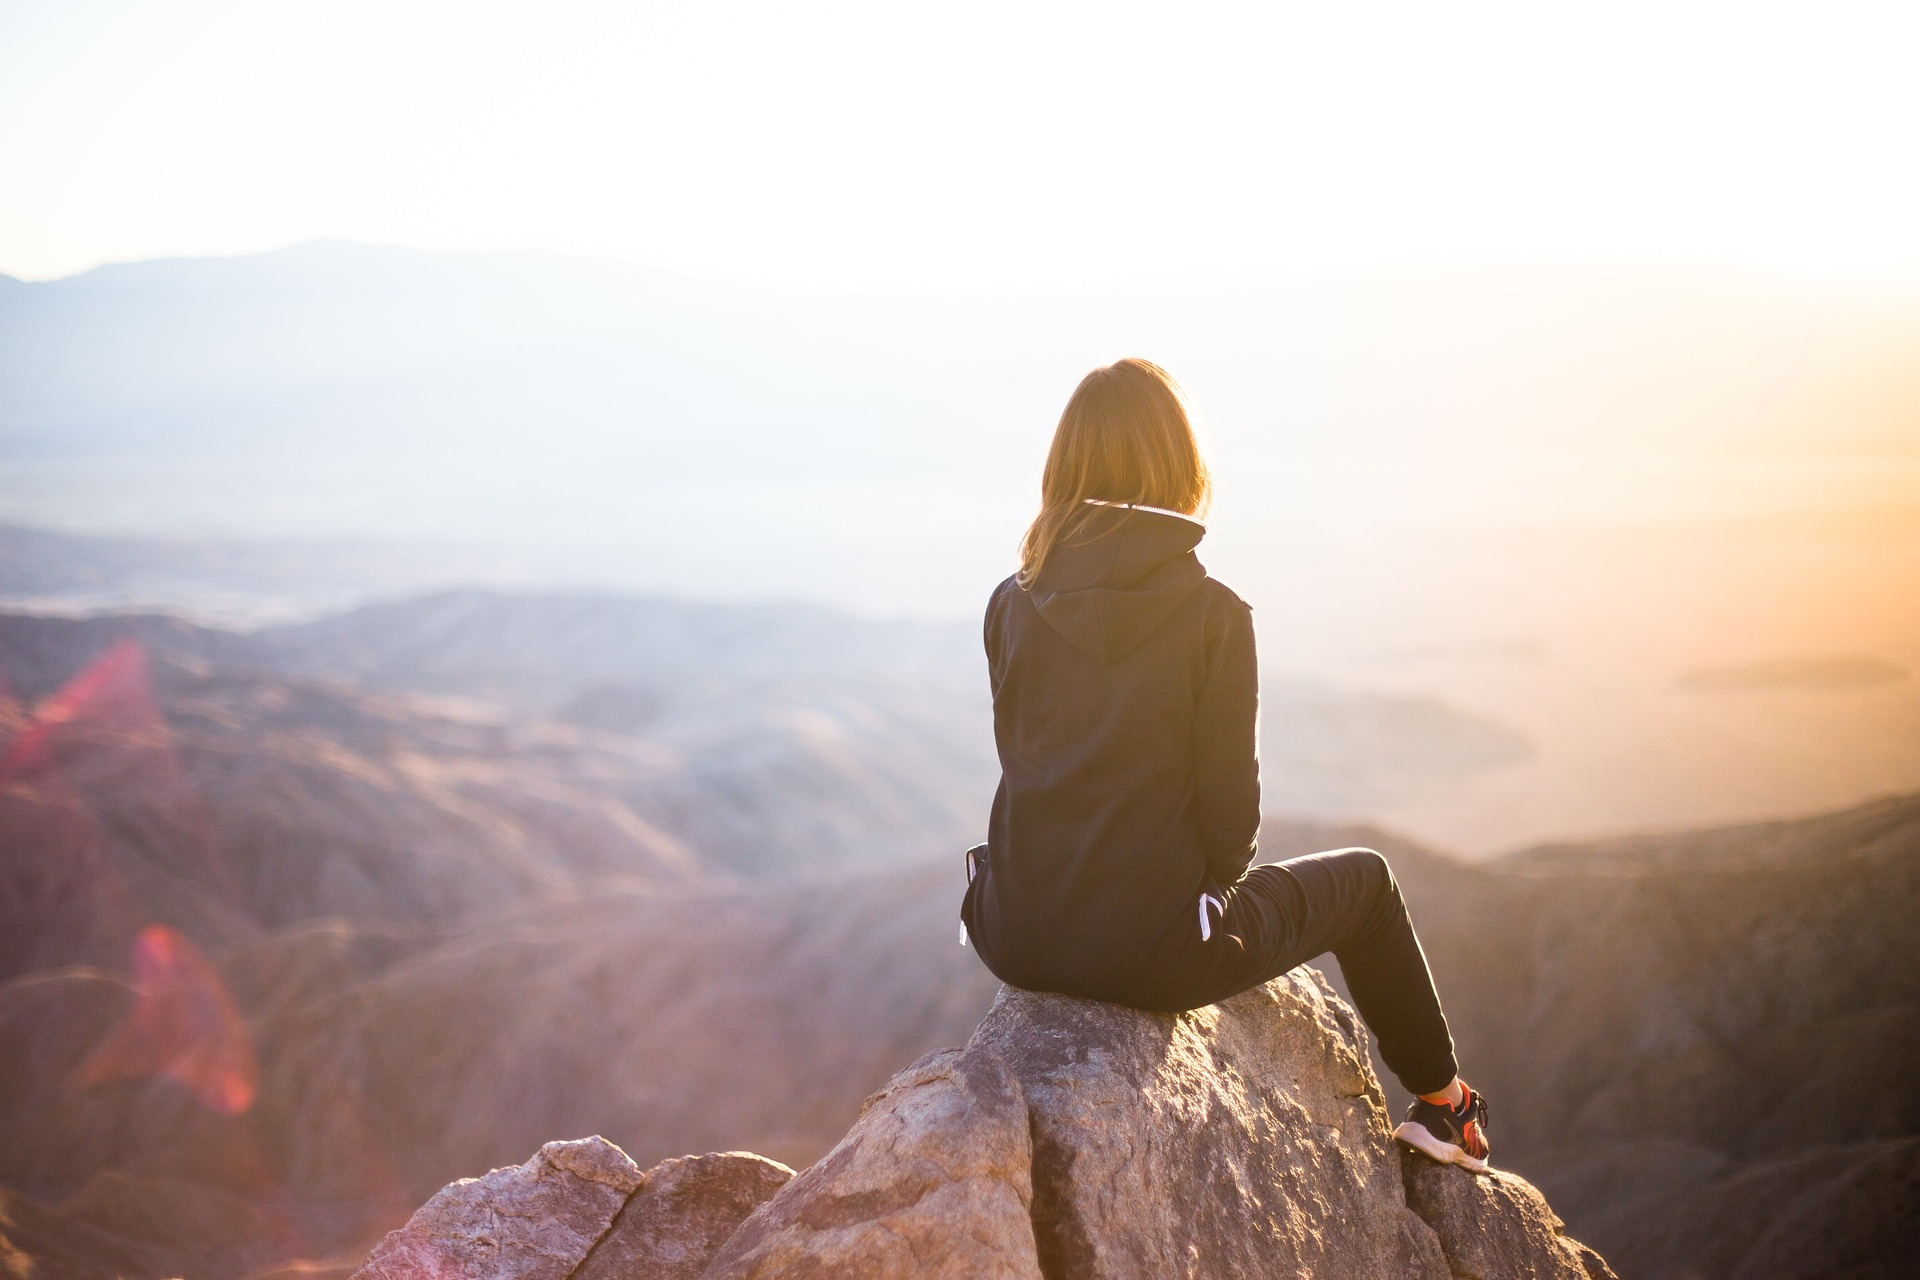 Woman sitting on top of mountain looking out over the landscape